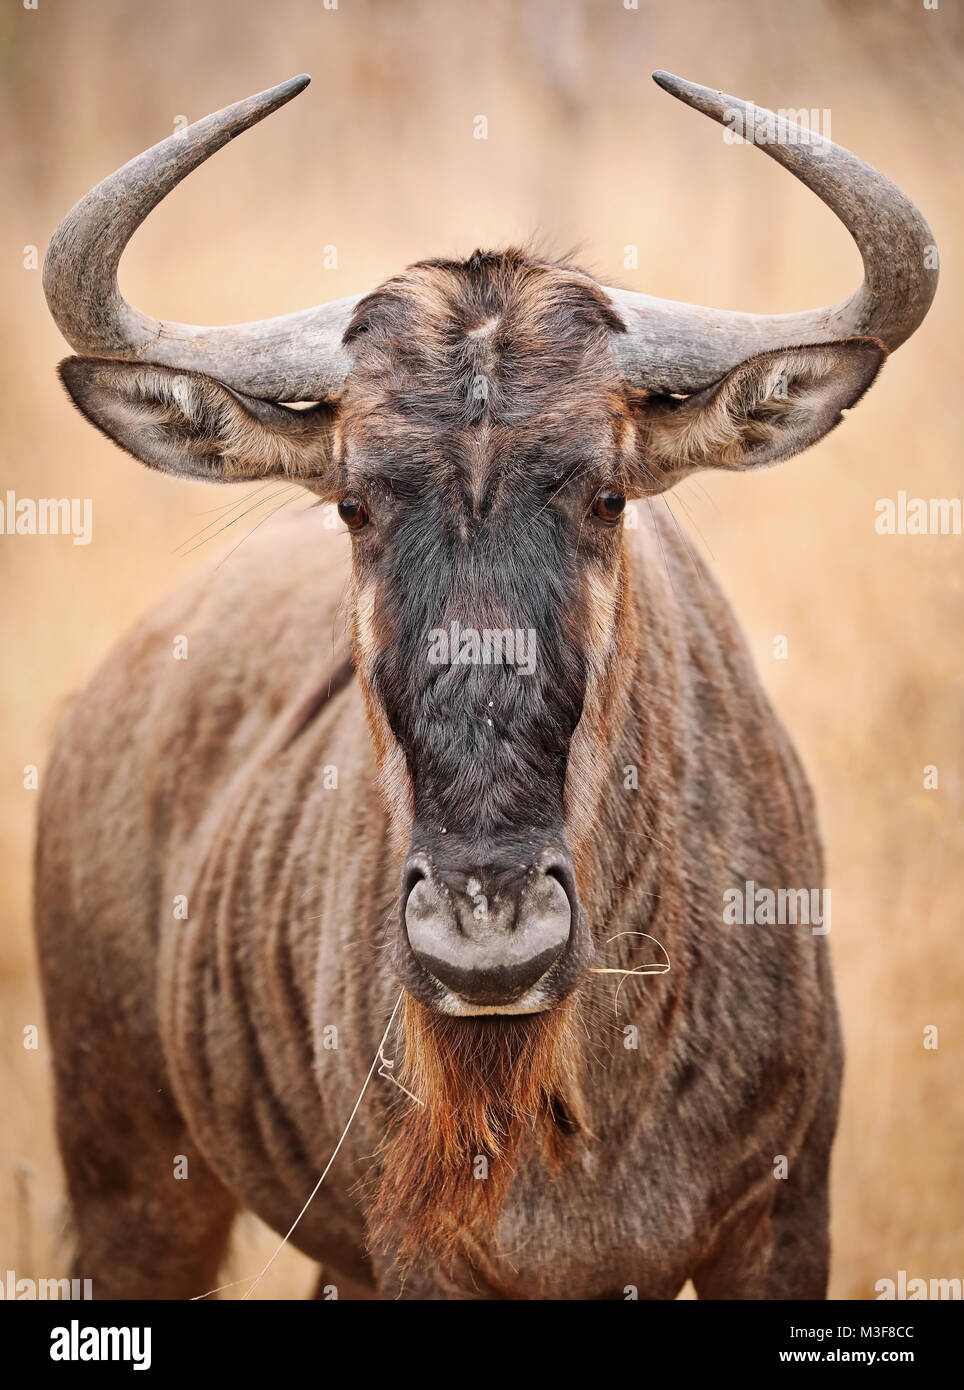 blue wildebeest, Kruger National Park, South Africa - Stock Image